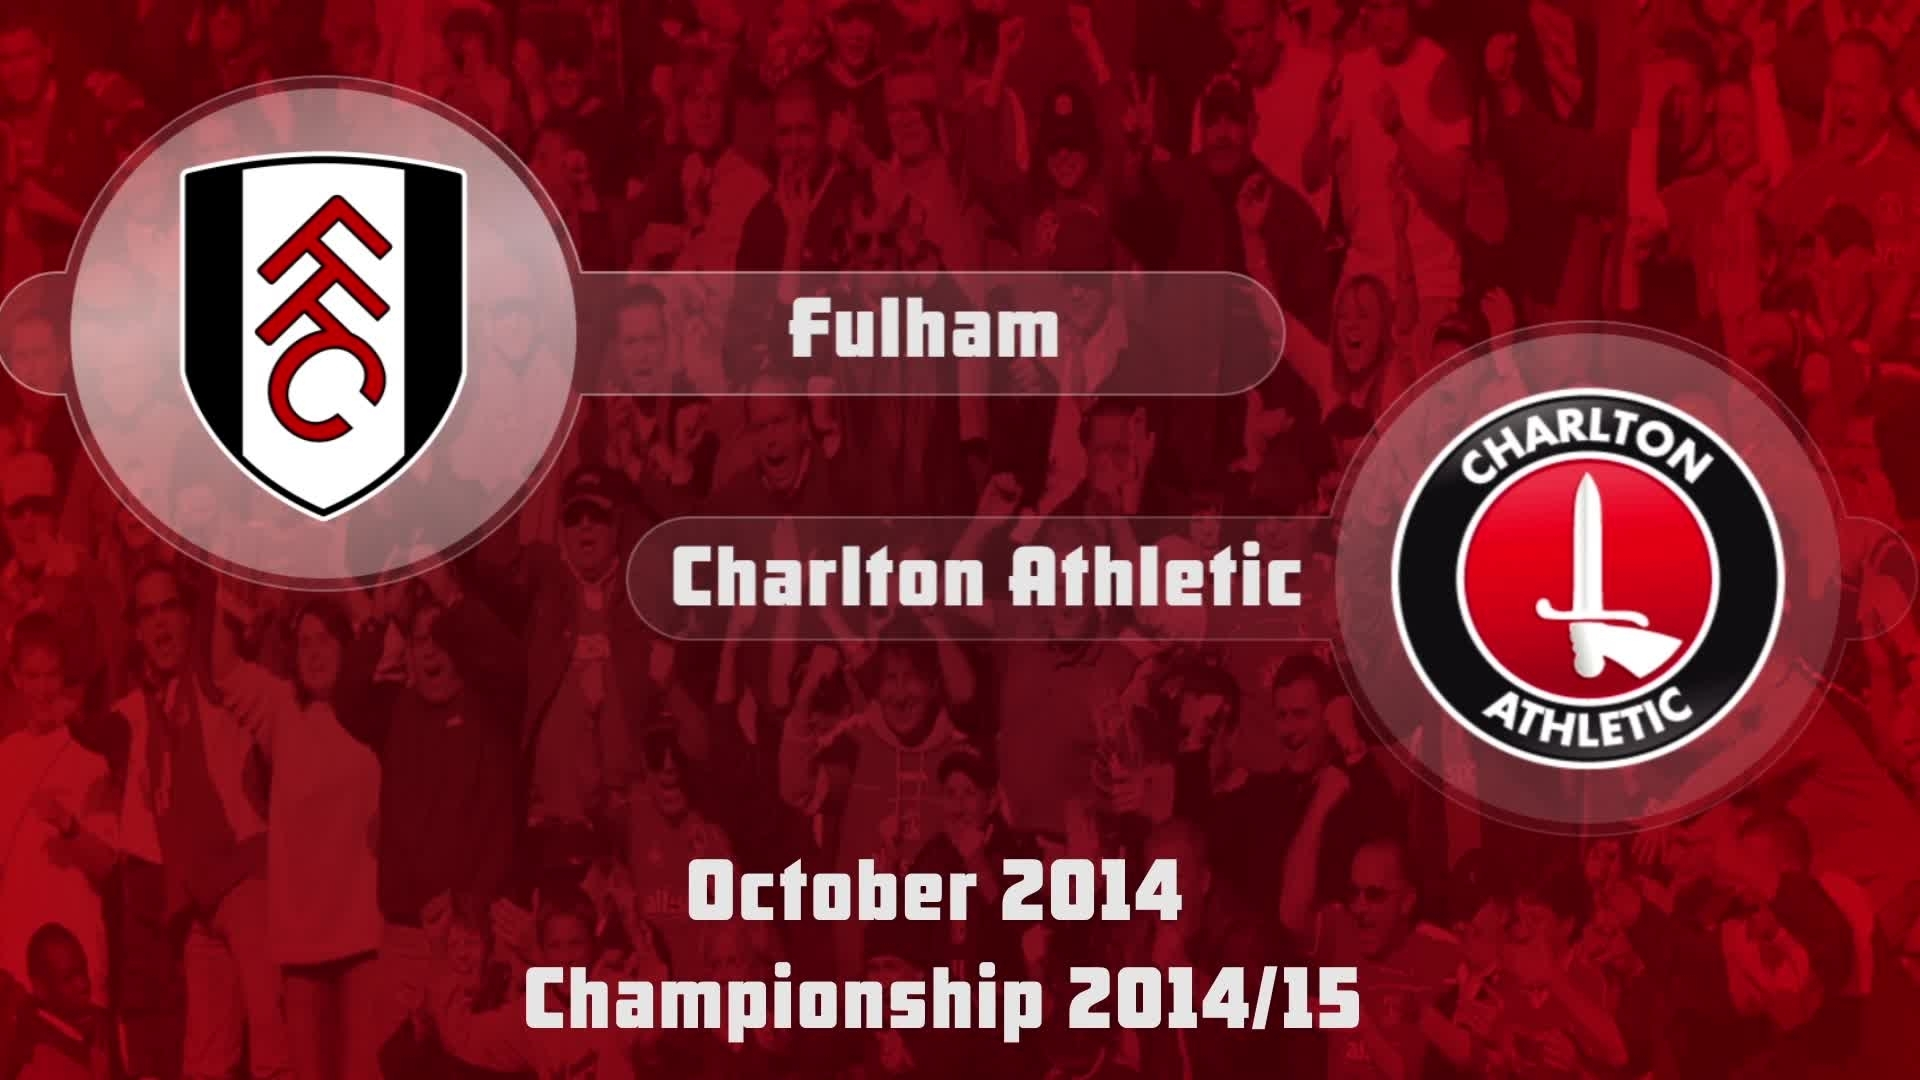 16 HIGHLIGHTS | Fulham 3 Charlton 0 (Oct 2014)